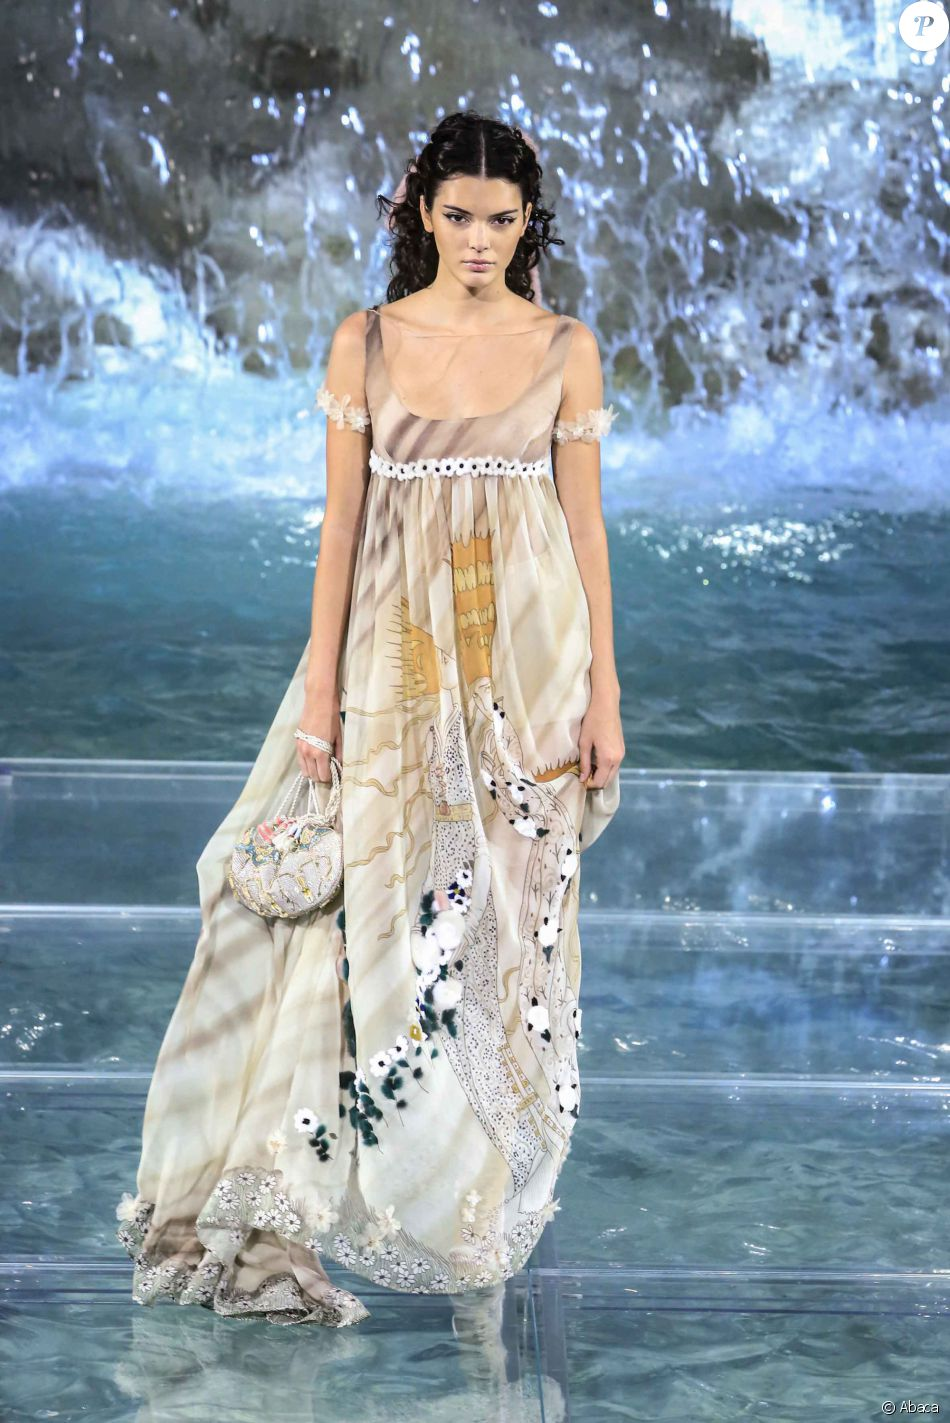 Kendall Jenner - Défilé  quot Legends and Fairytales quot  de Fendi  (collection couture, 9a4a166dd01